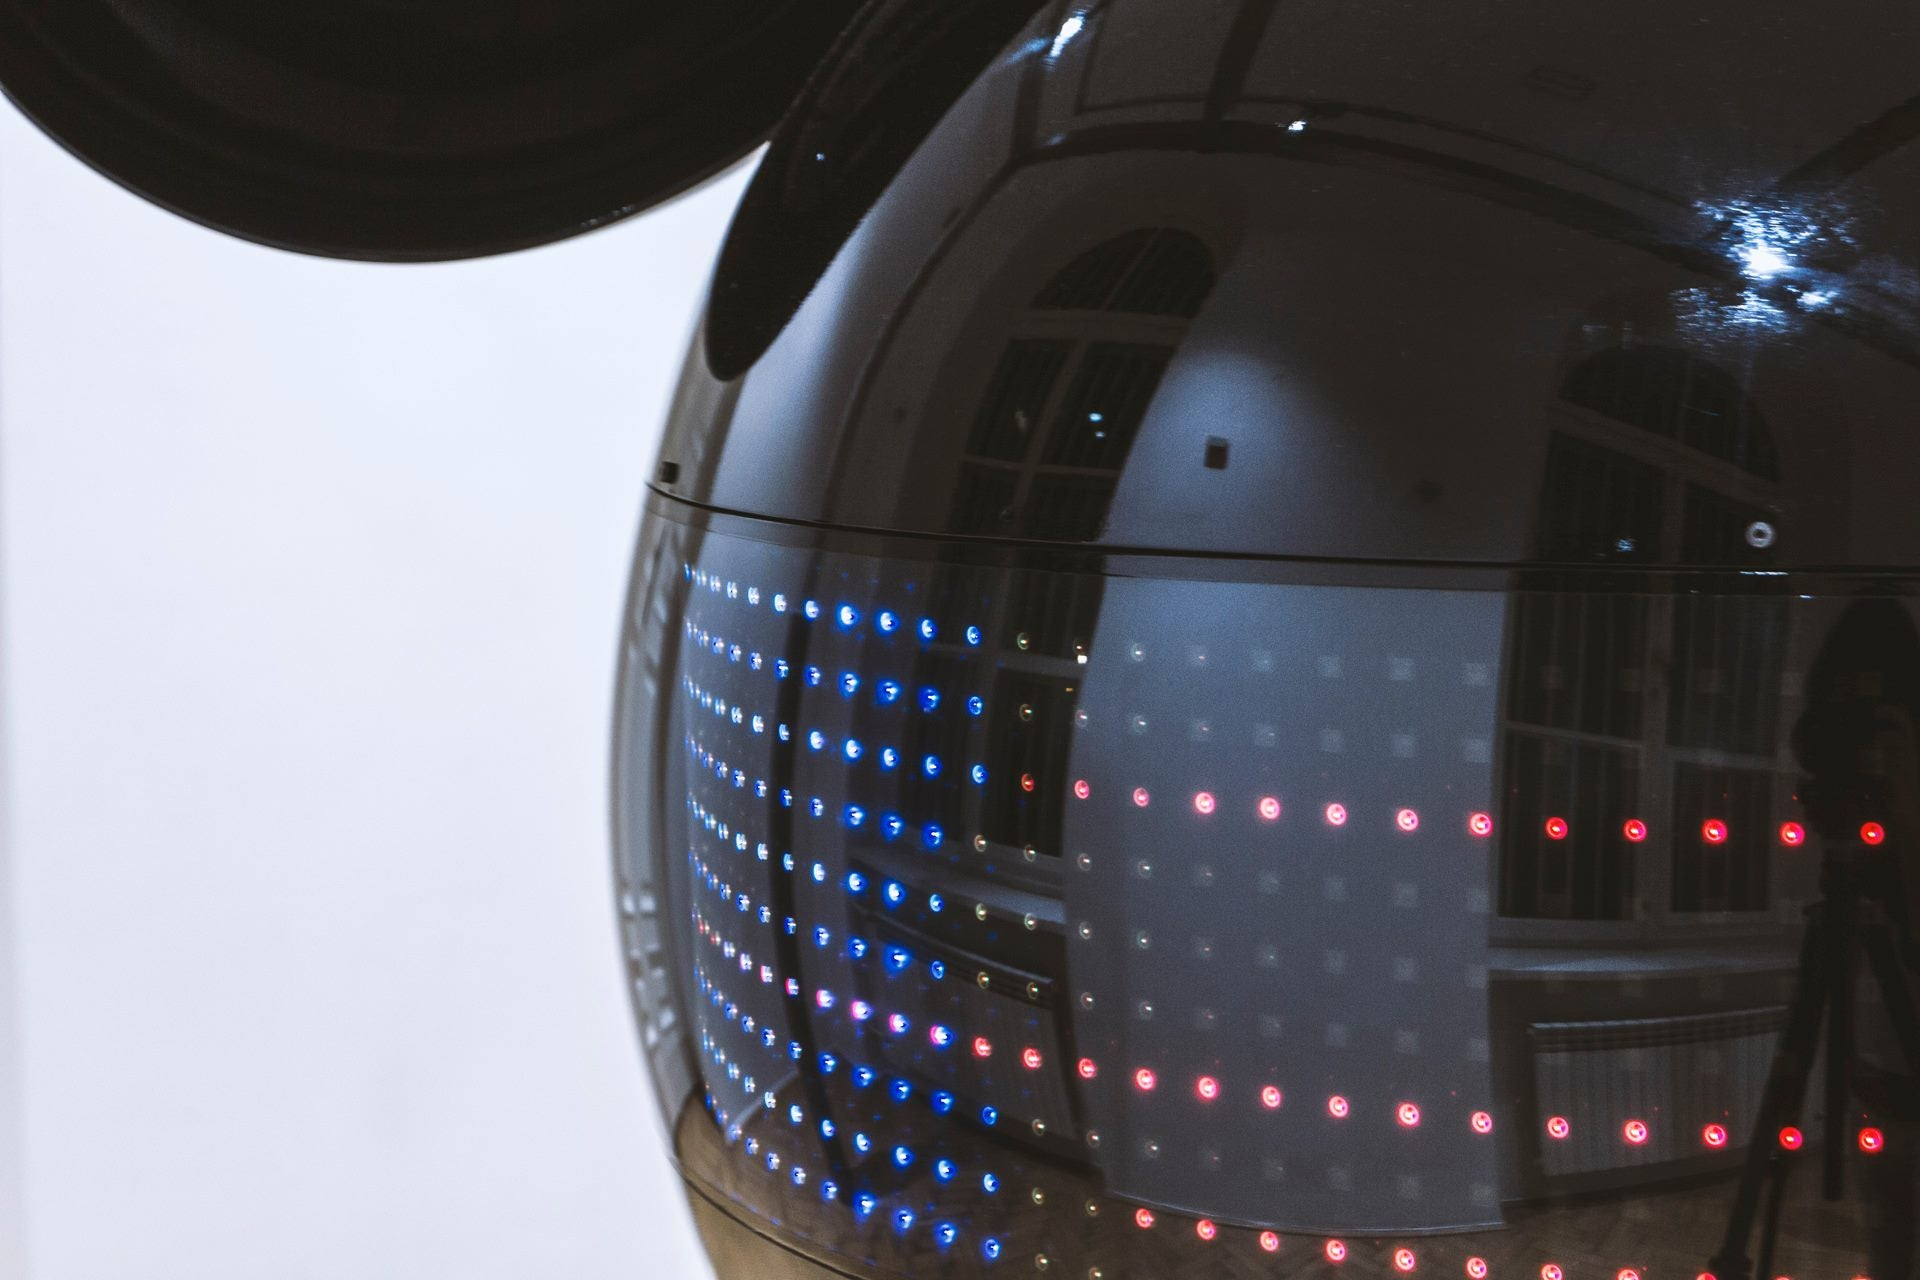 Ominous Mickey Mouse Robot Head Is a Music Visualizer